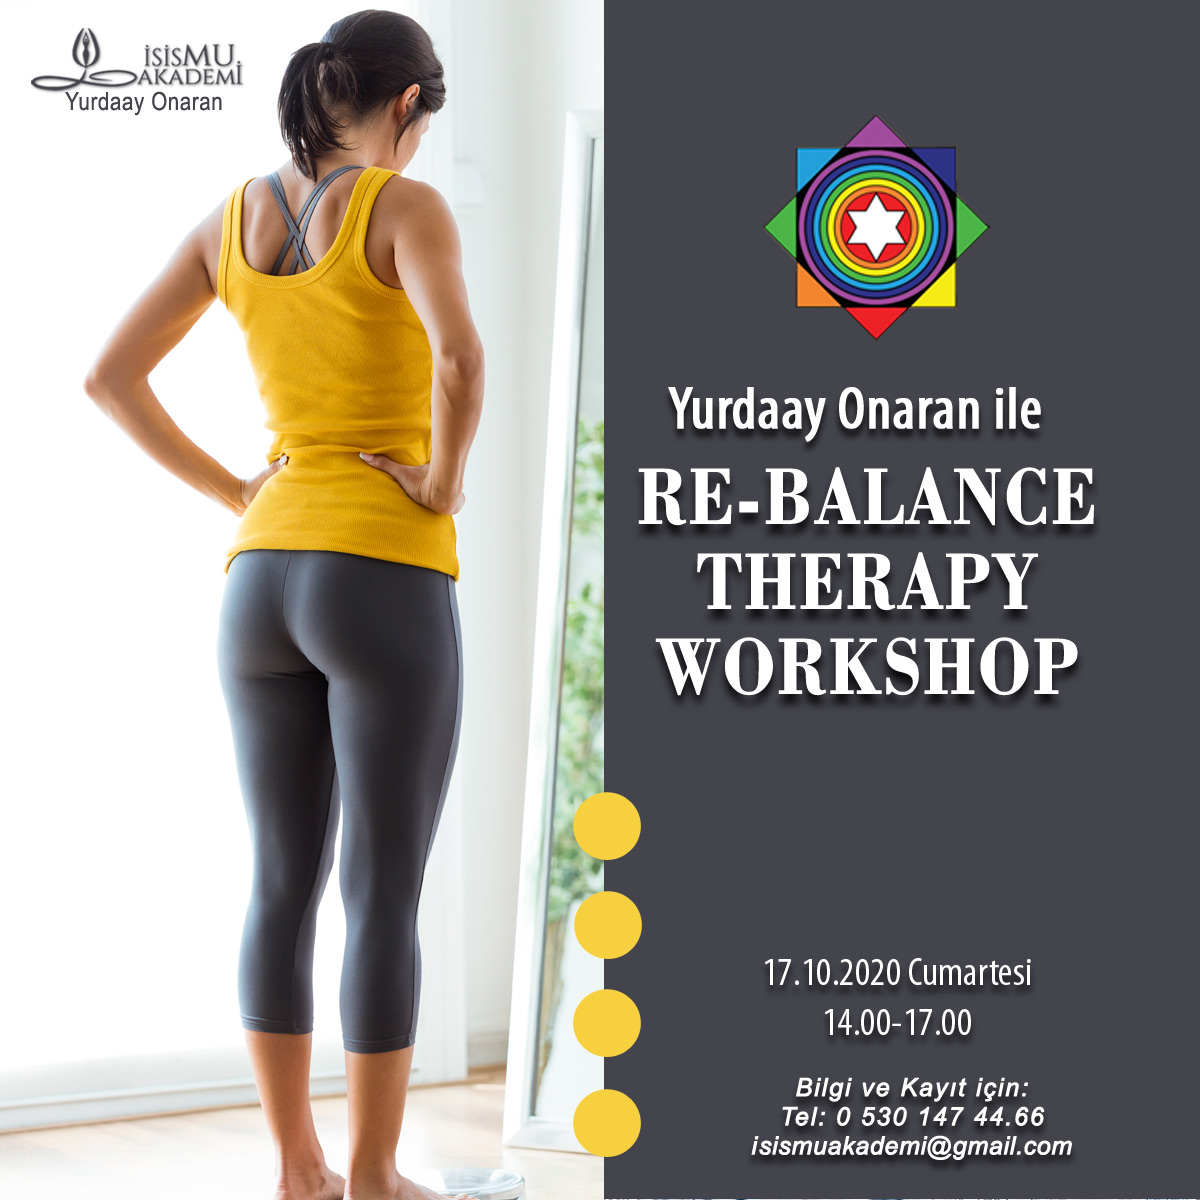 RE-BALANCE THERAPY 17.10.2020